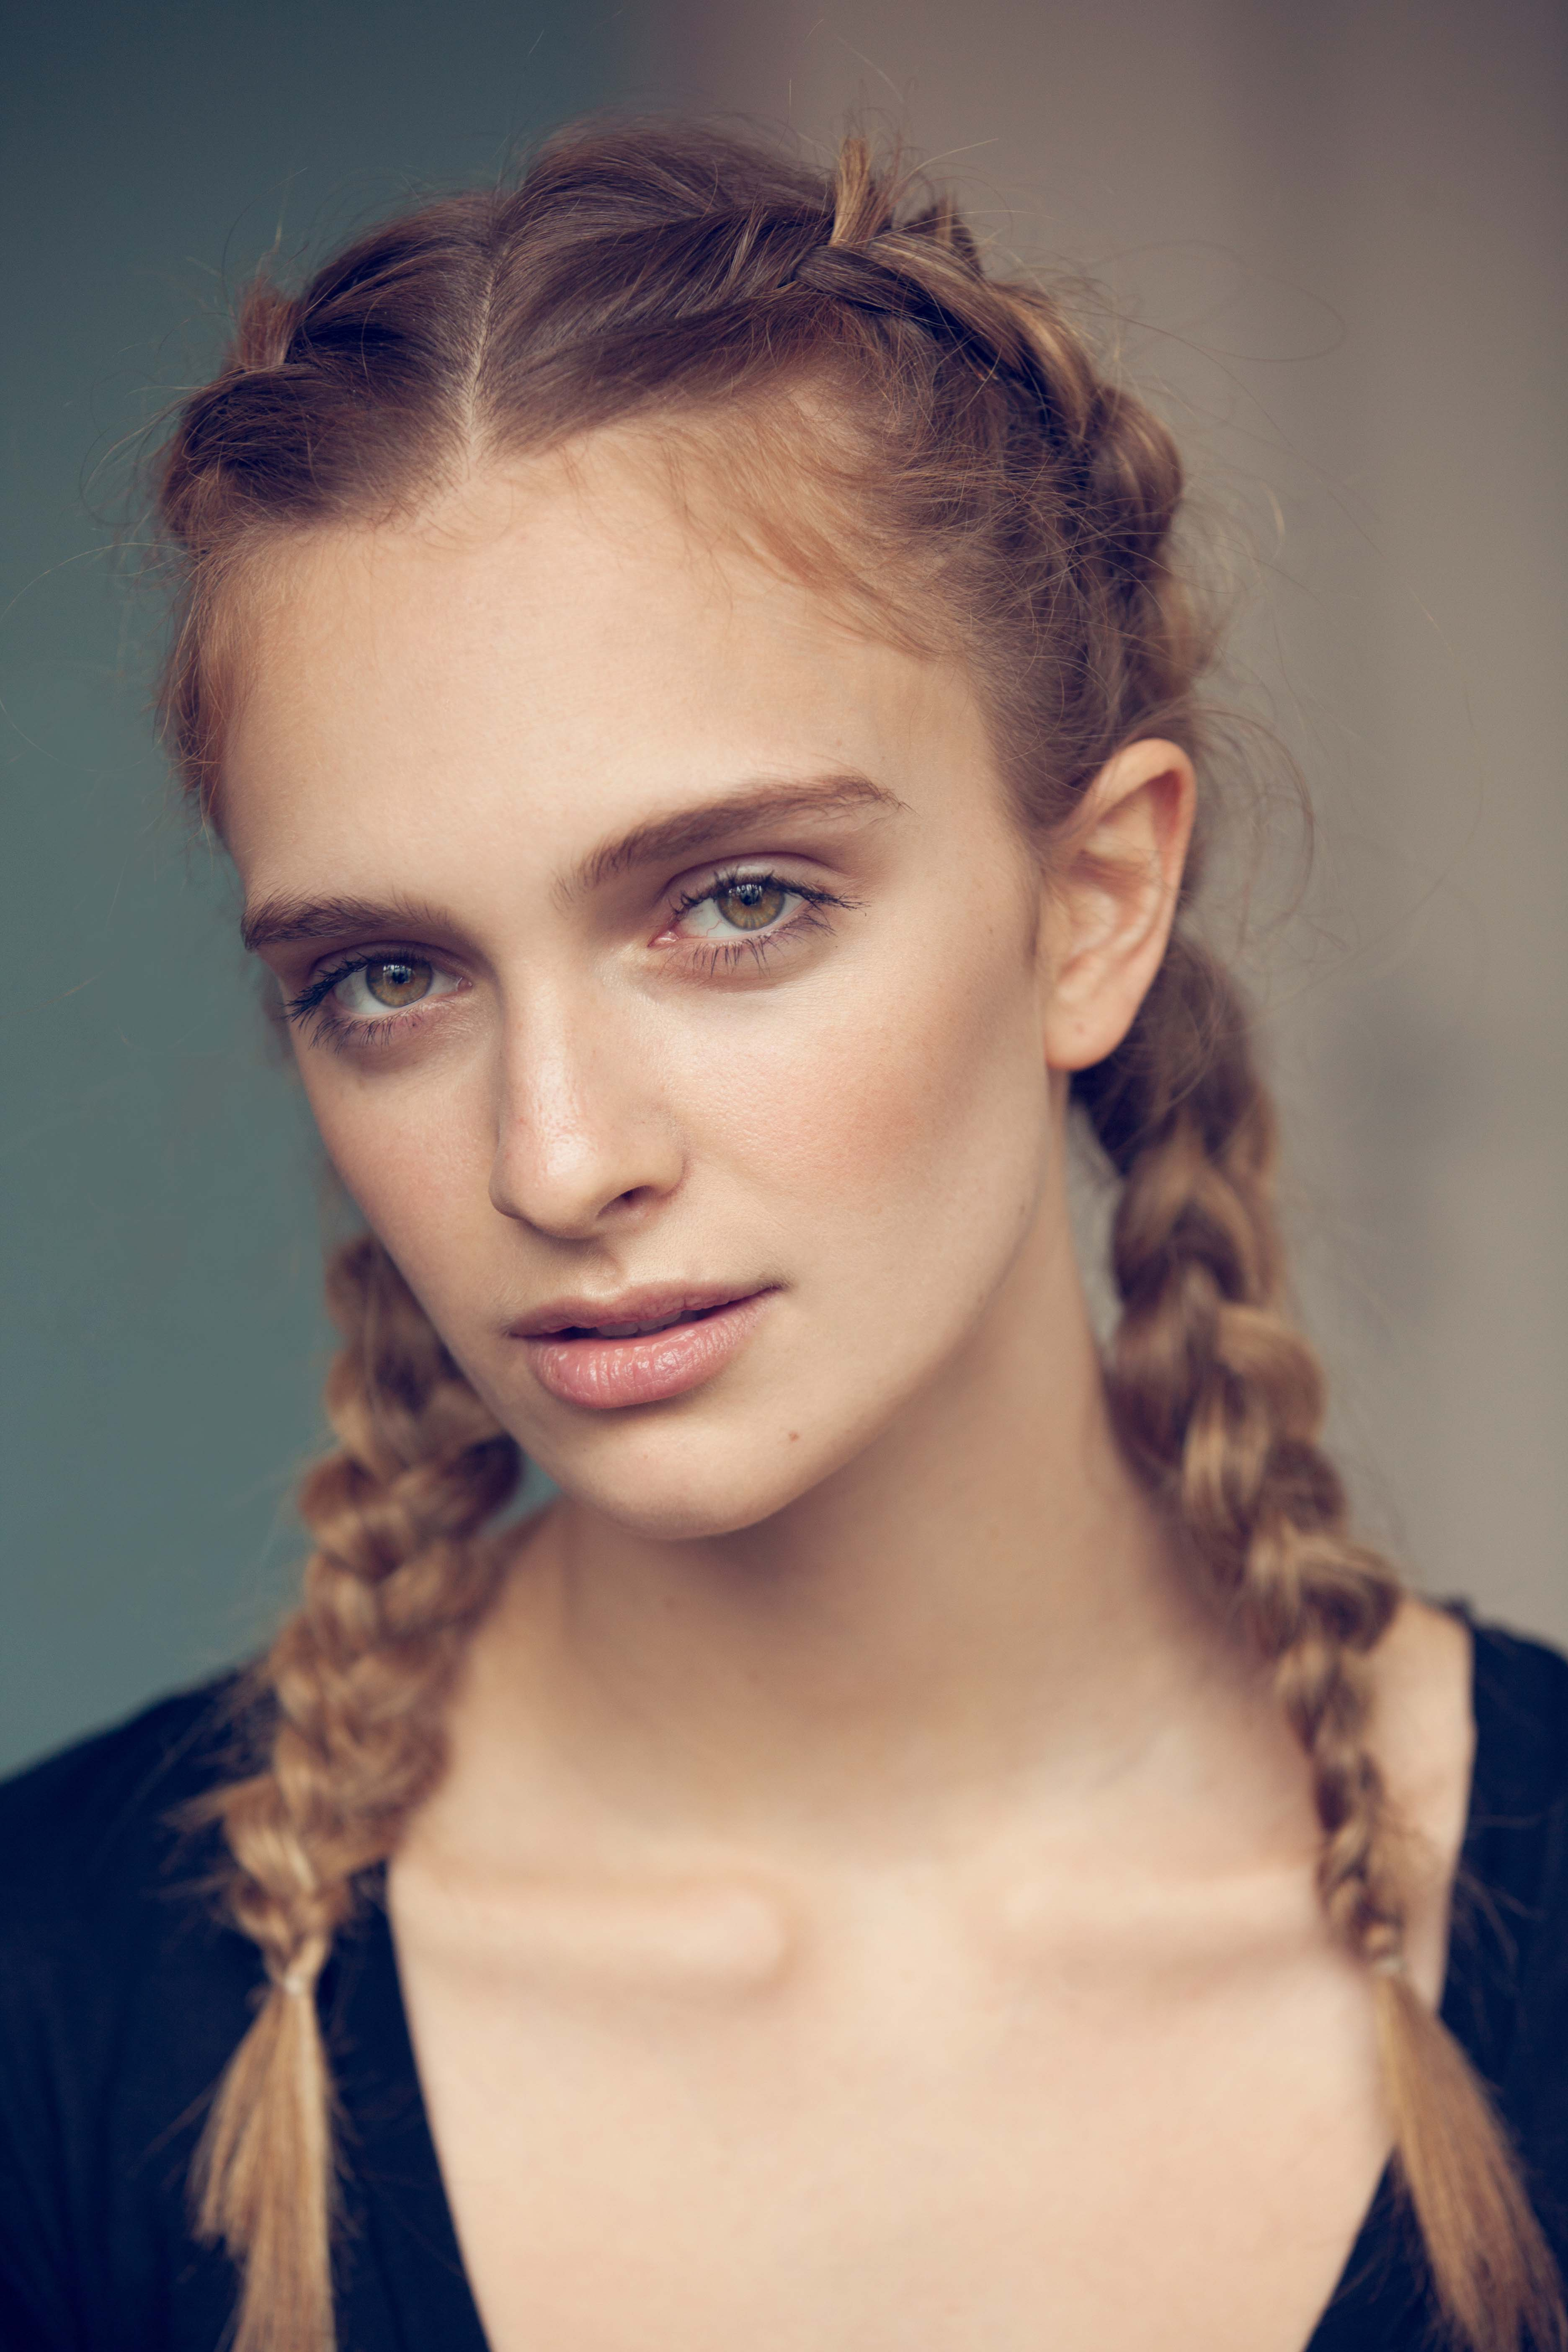 Superb Braid Hairstyles 2016 This Years Most Stylish Plaits Short Hairstyles For Black Women Fulllsitofus